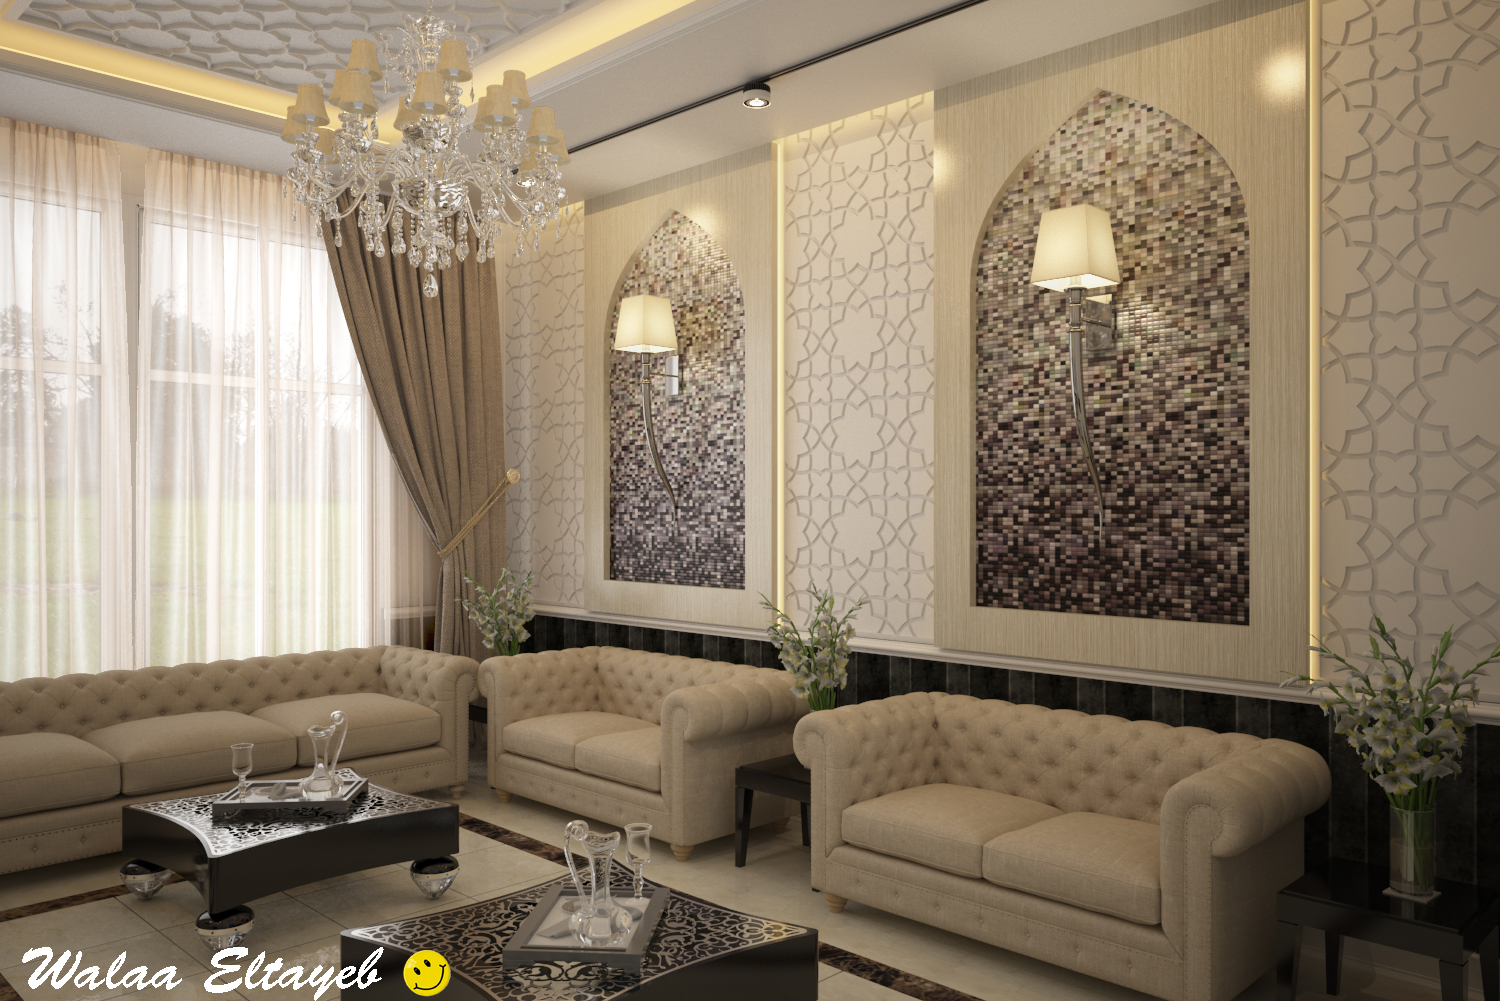 Salon interance hall walaadesigns for An interior design